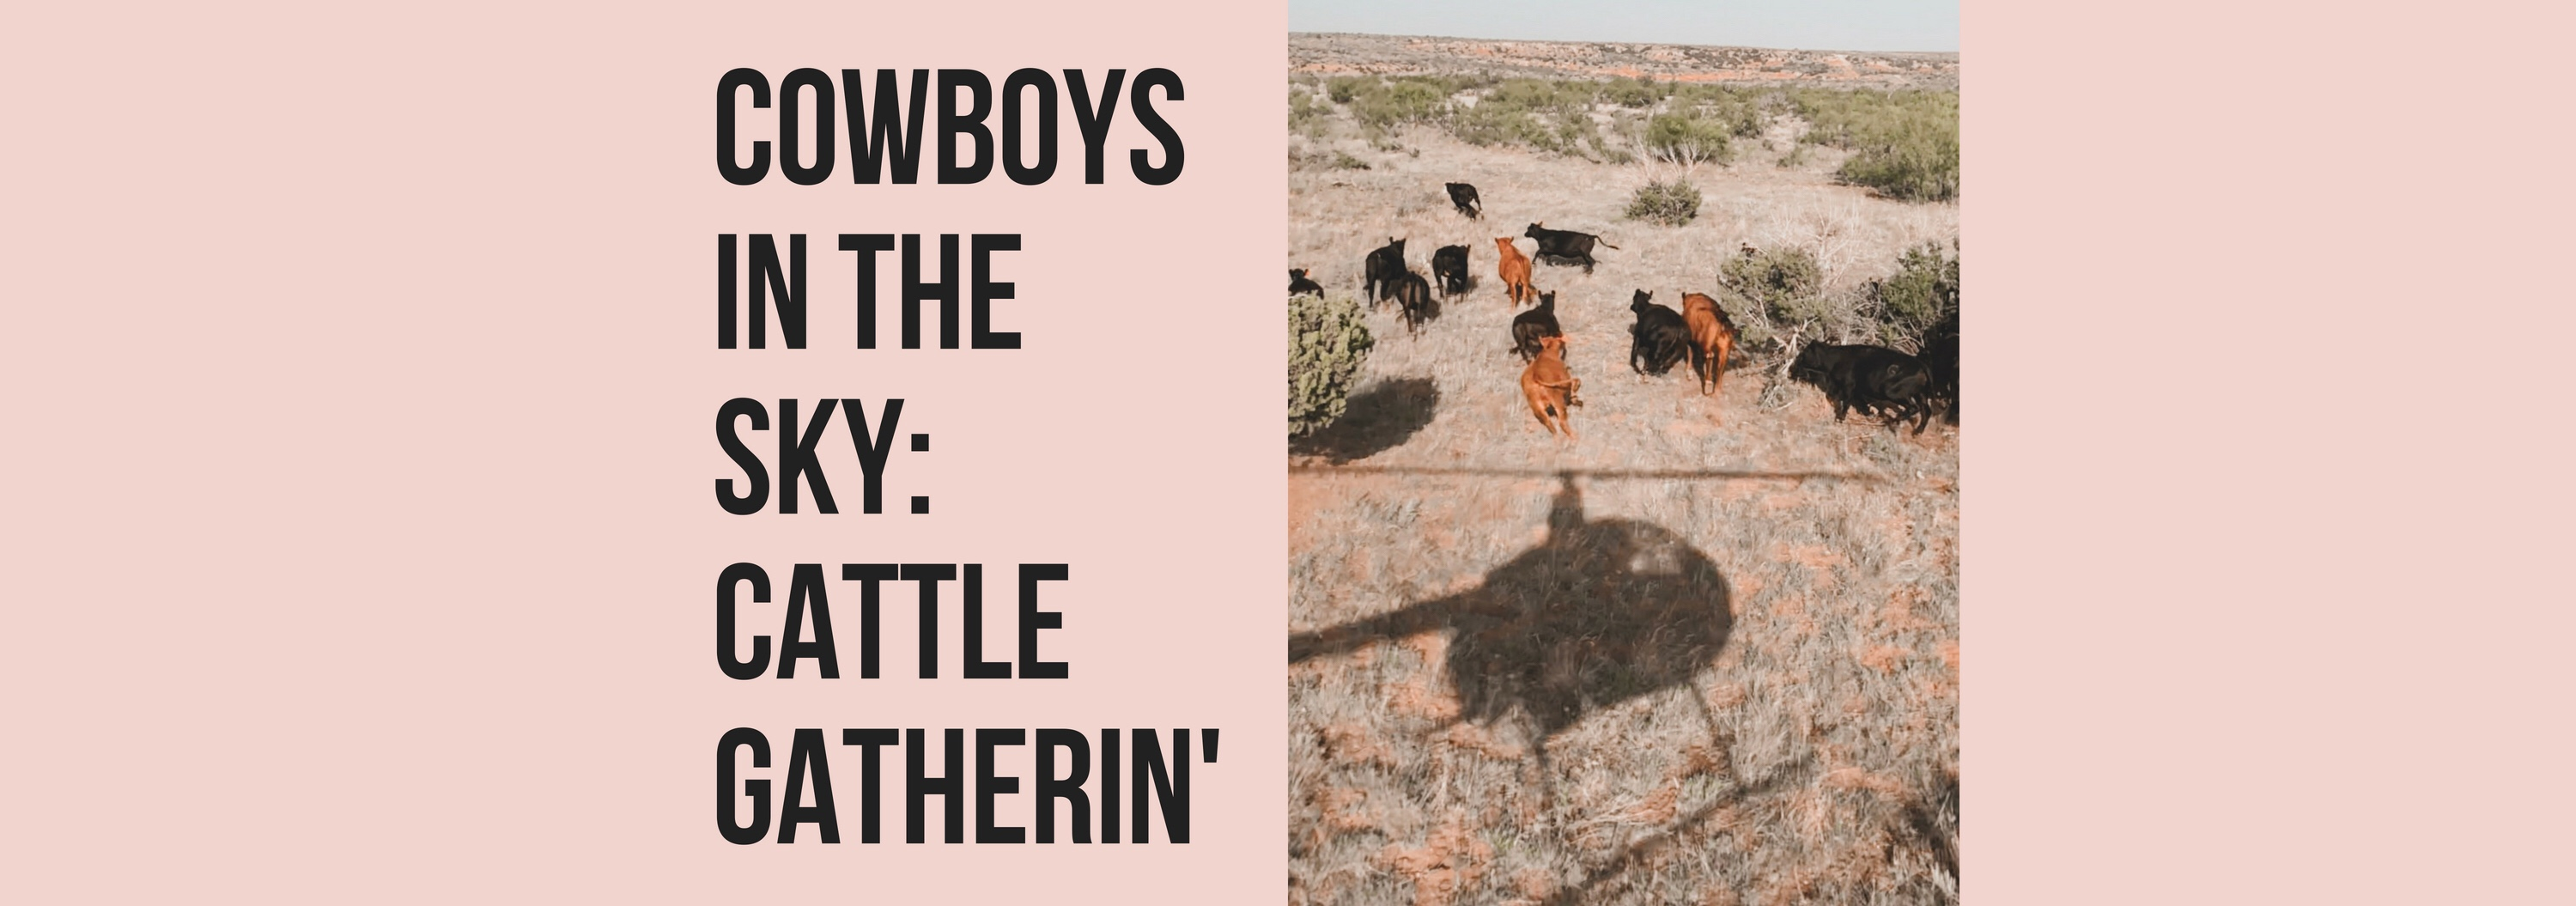 Cowboys In The Sky: Cattle Gatherin'